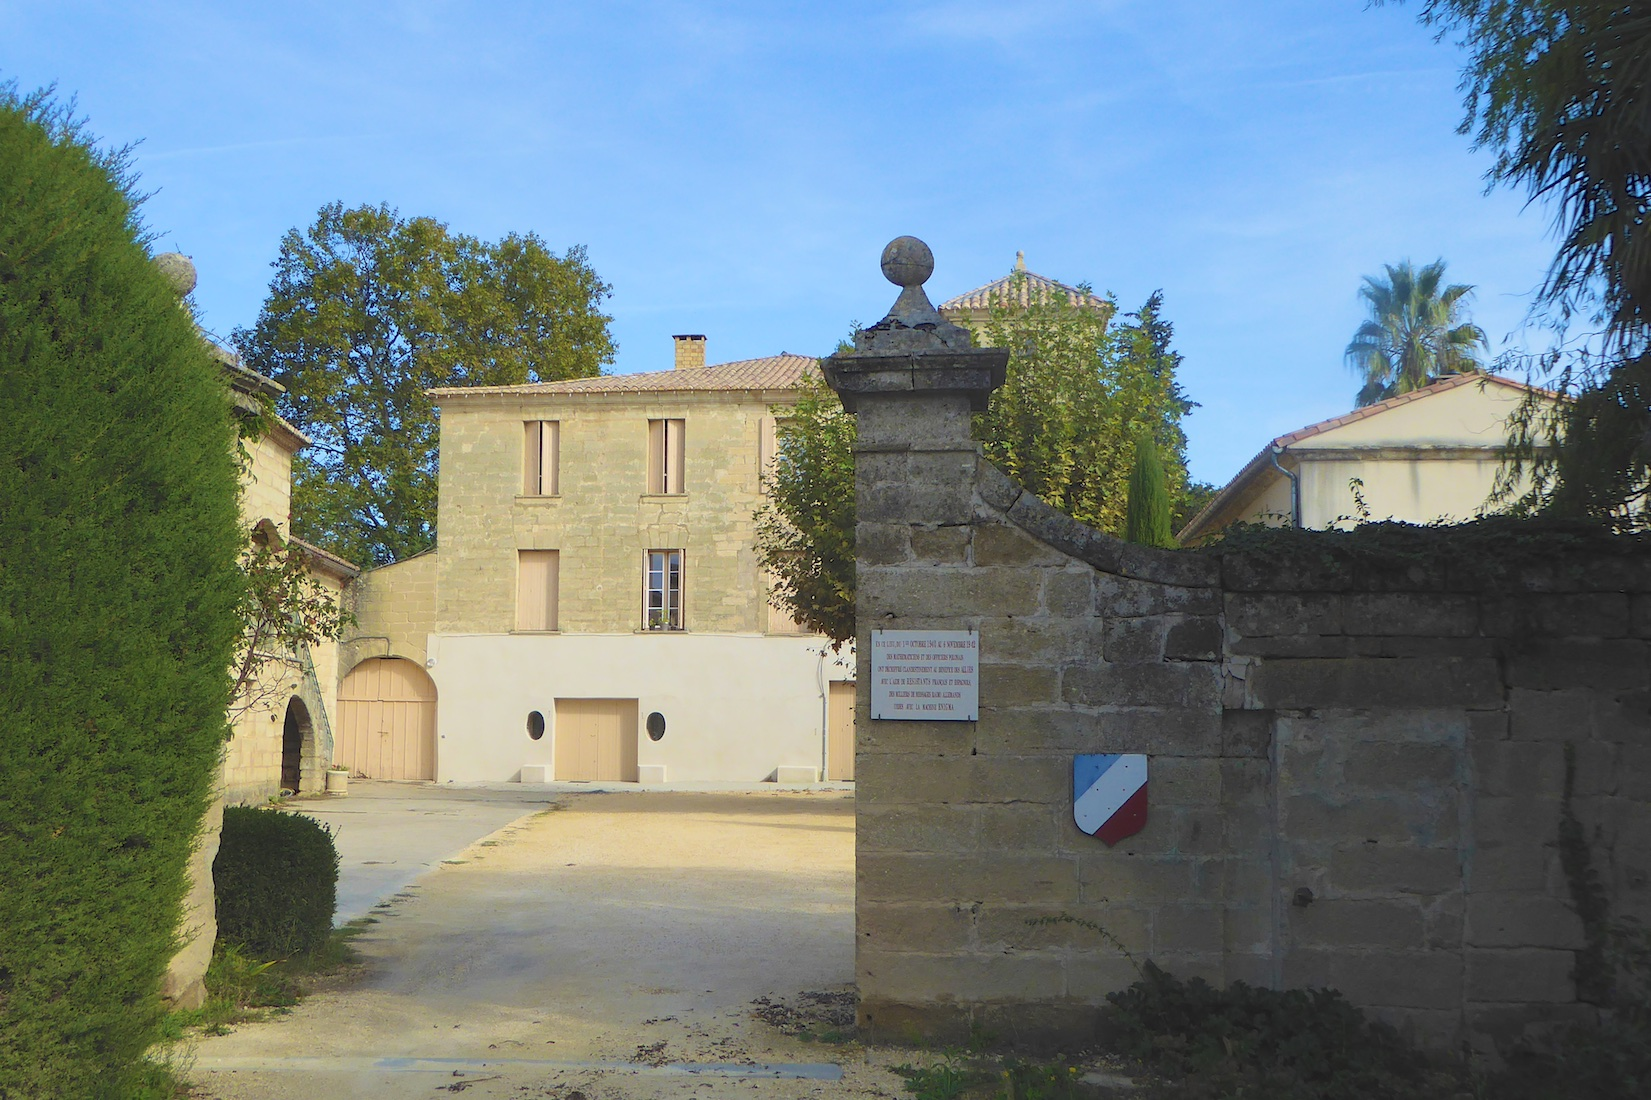 Entrance to Château des Fouzes, Uzes, France, hoem to the Polish code breakers who cracked Enigma in 1932